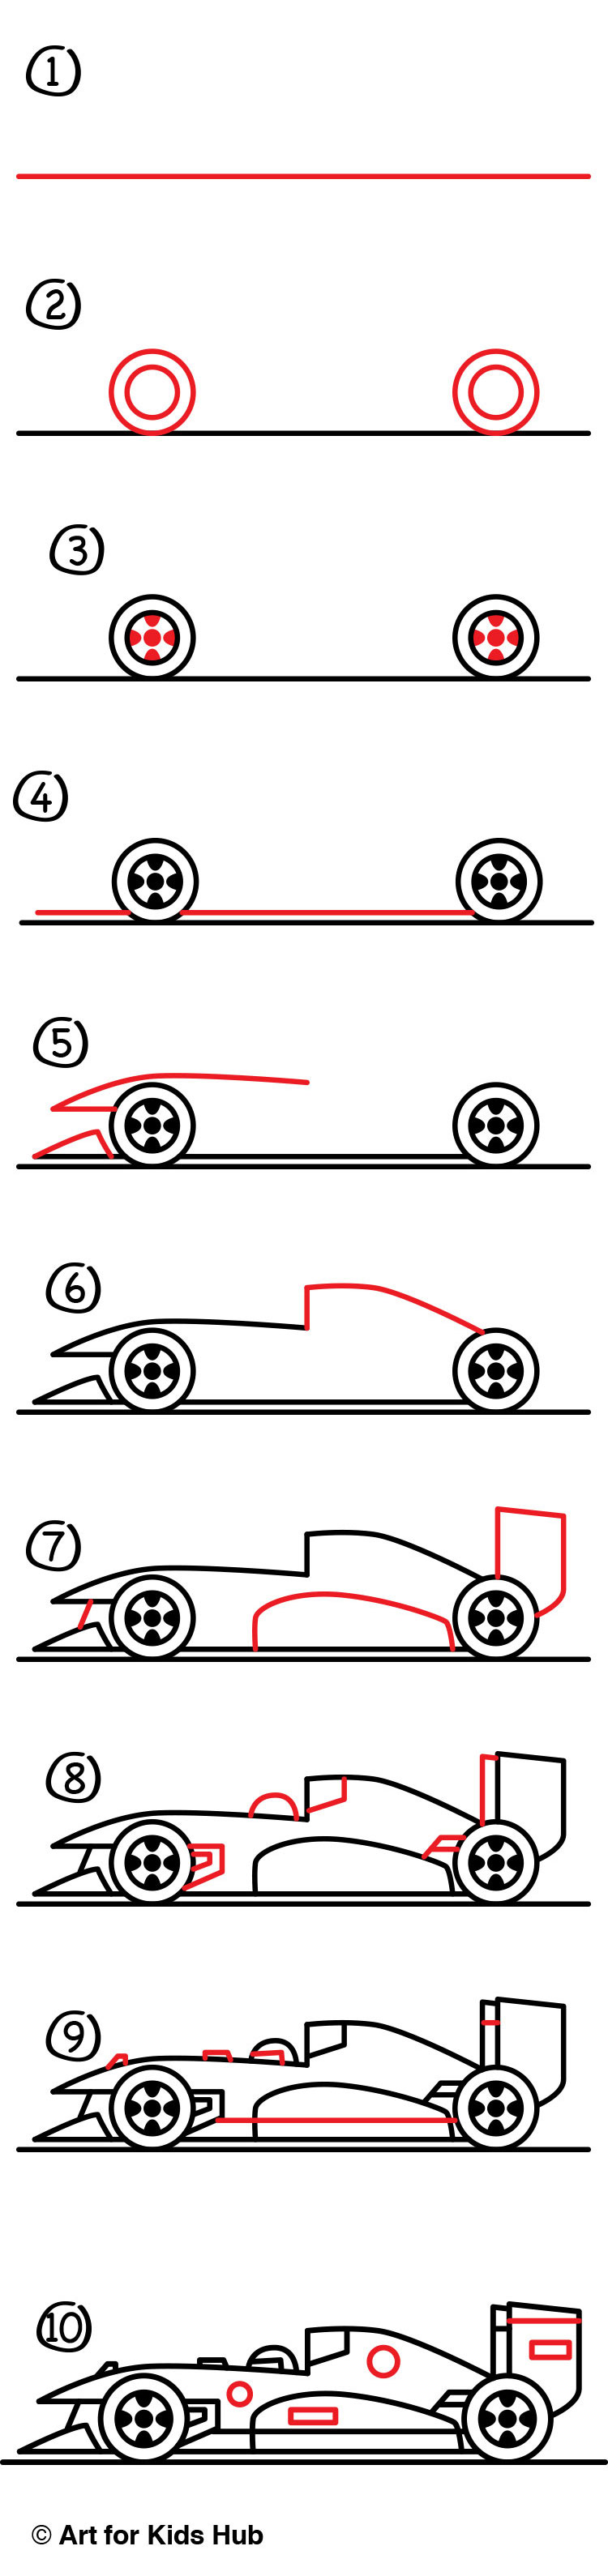 How To Draw A Race Car - Art For Kids Hub